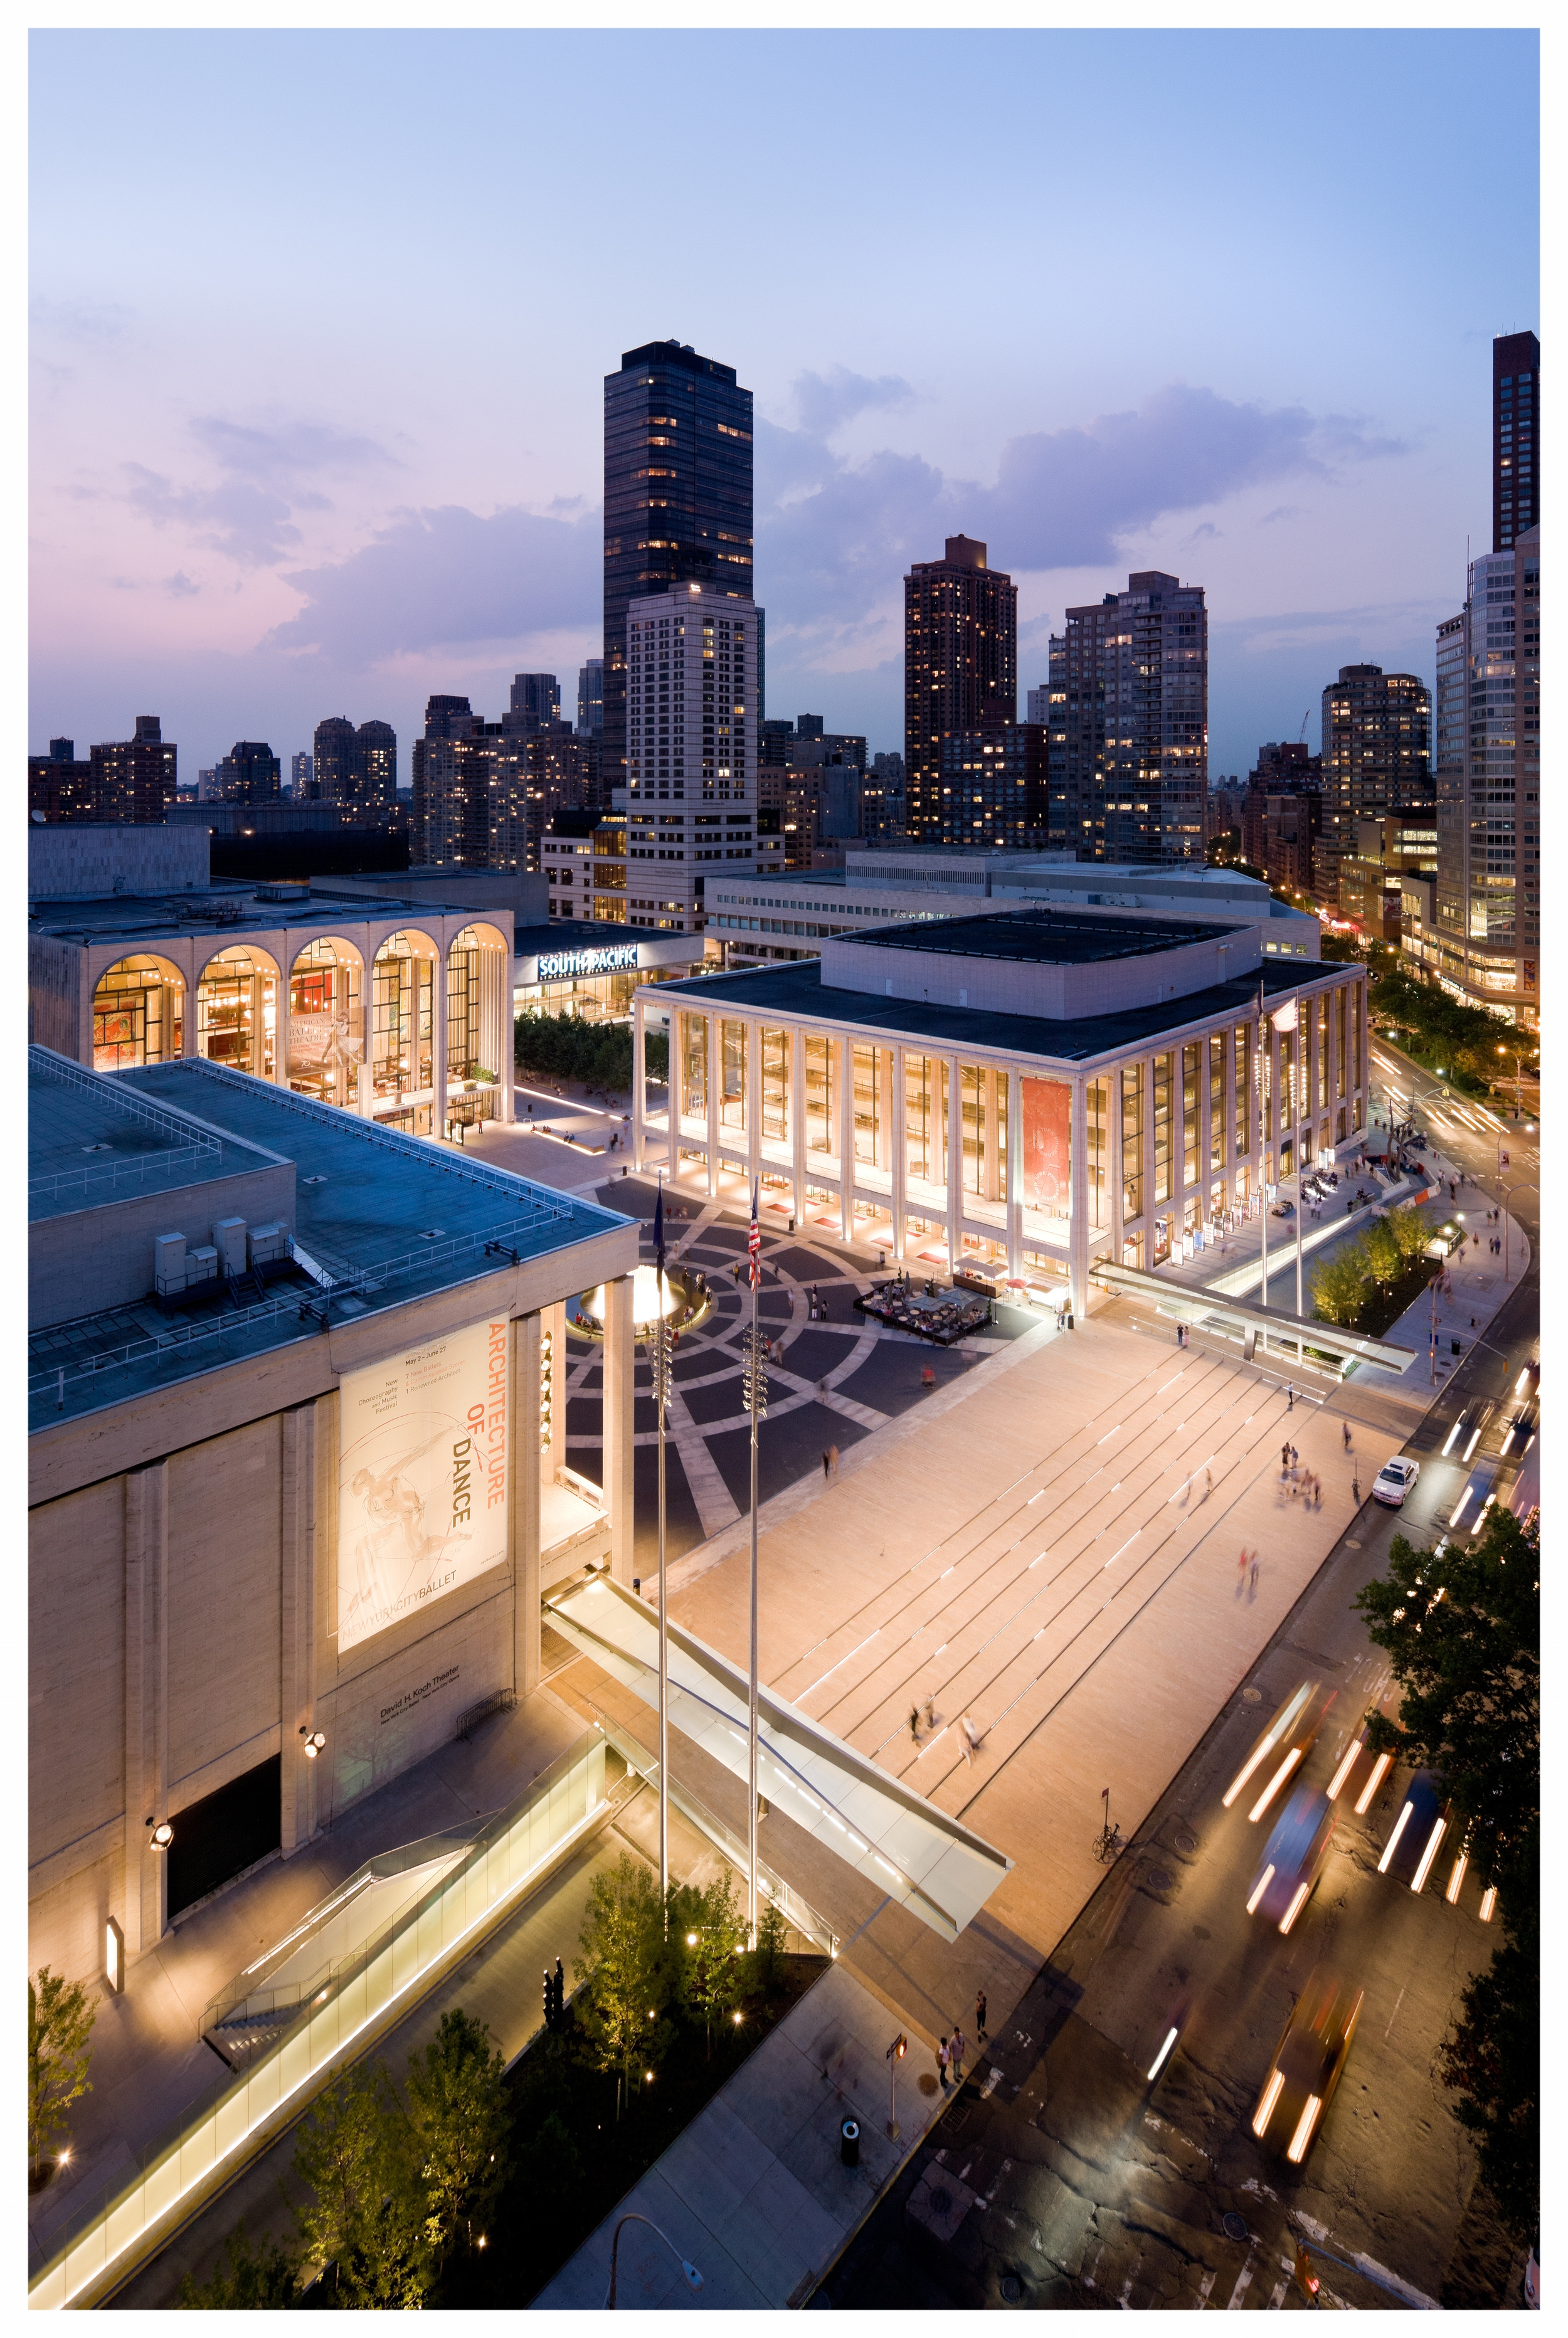 Lincoln Center Plazas_001.jpg